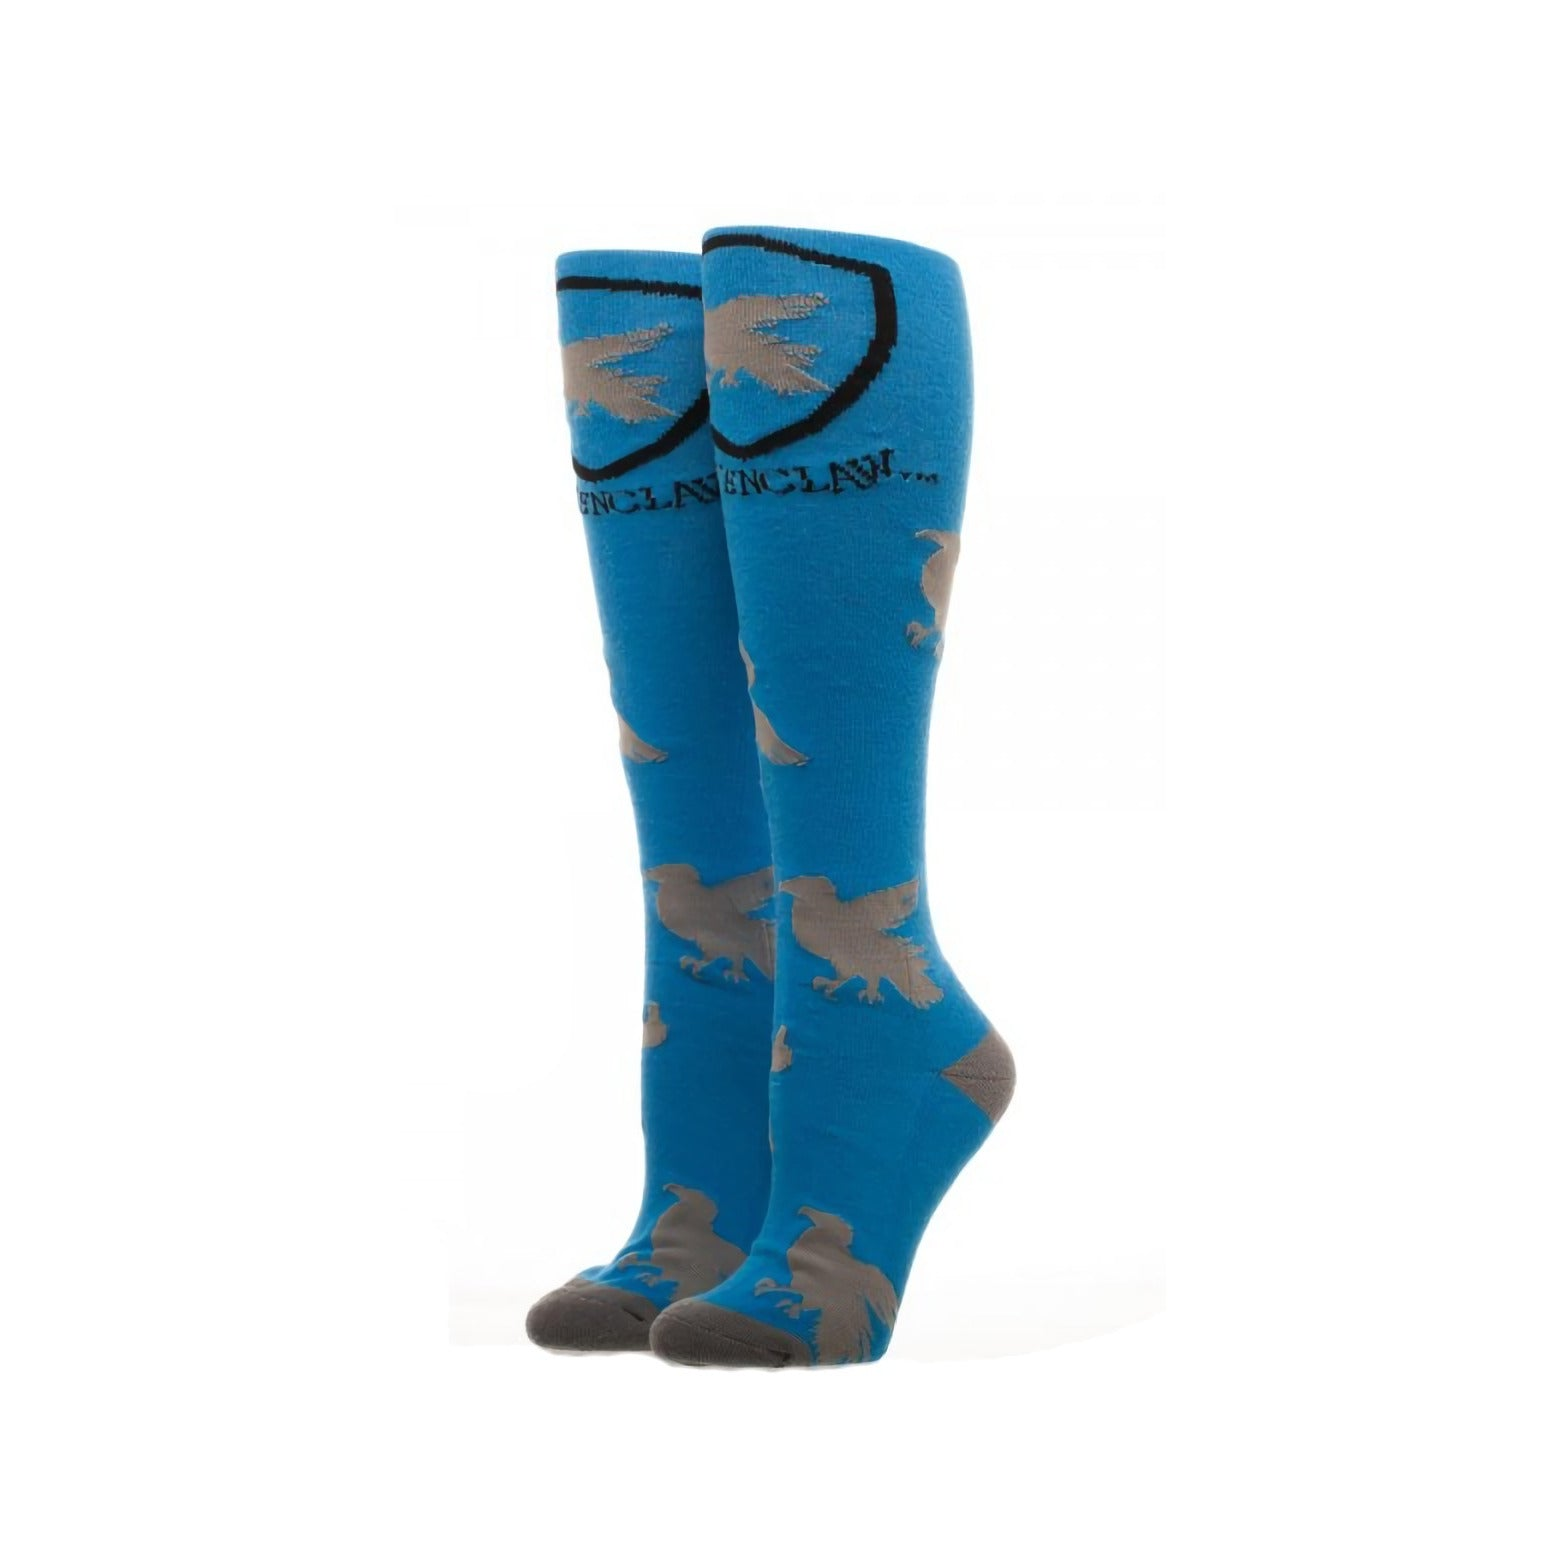 Harry Potter Ravenclaw House Knee High Socks